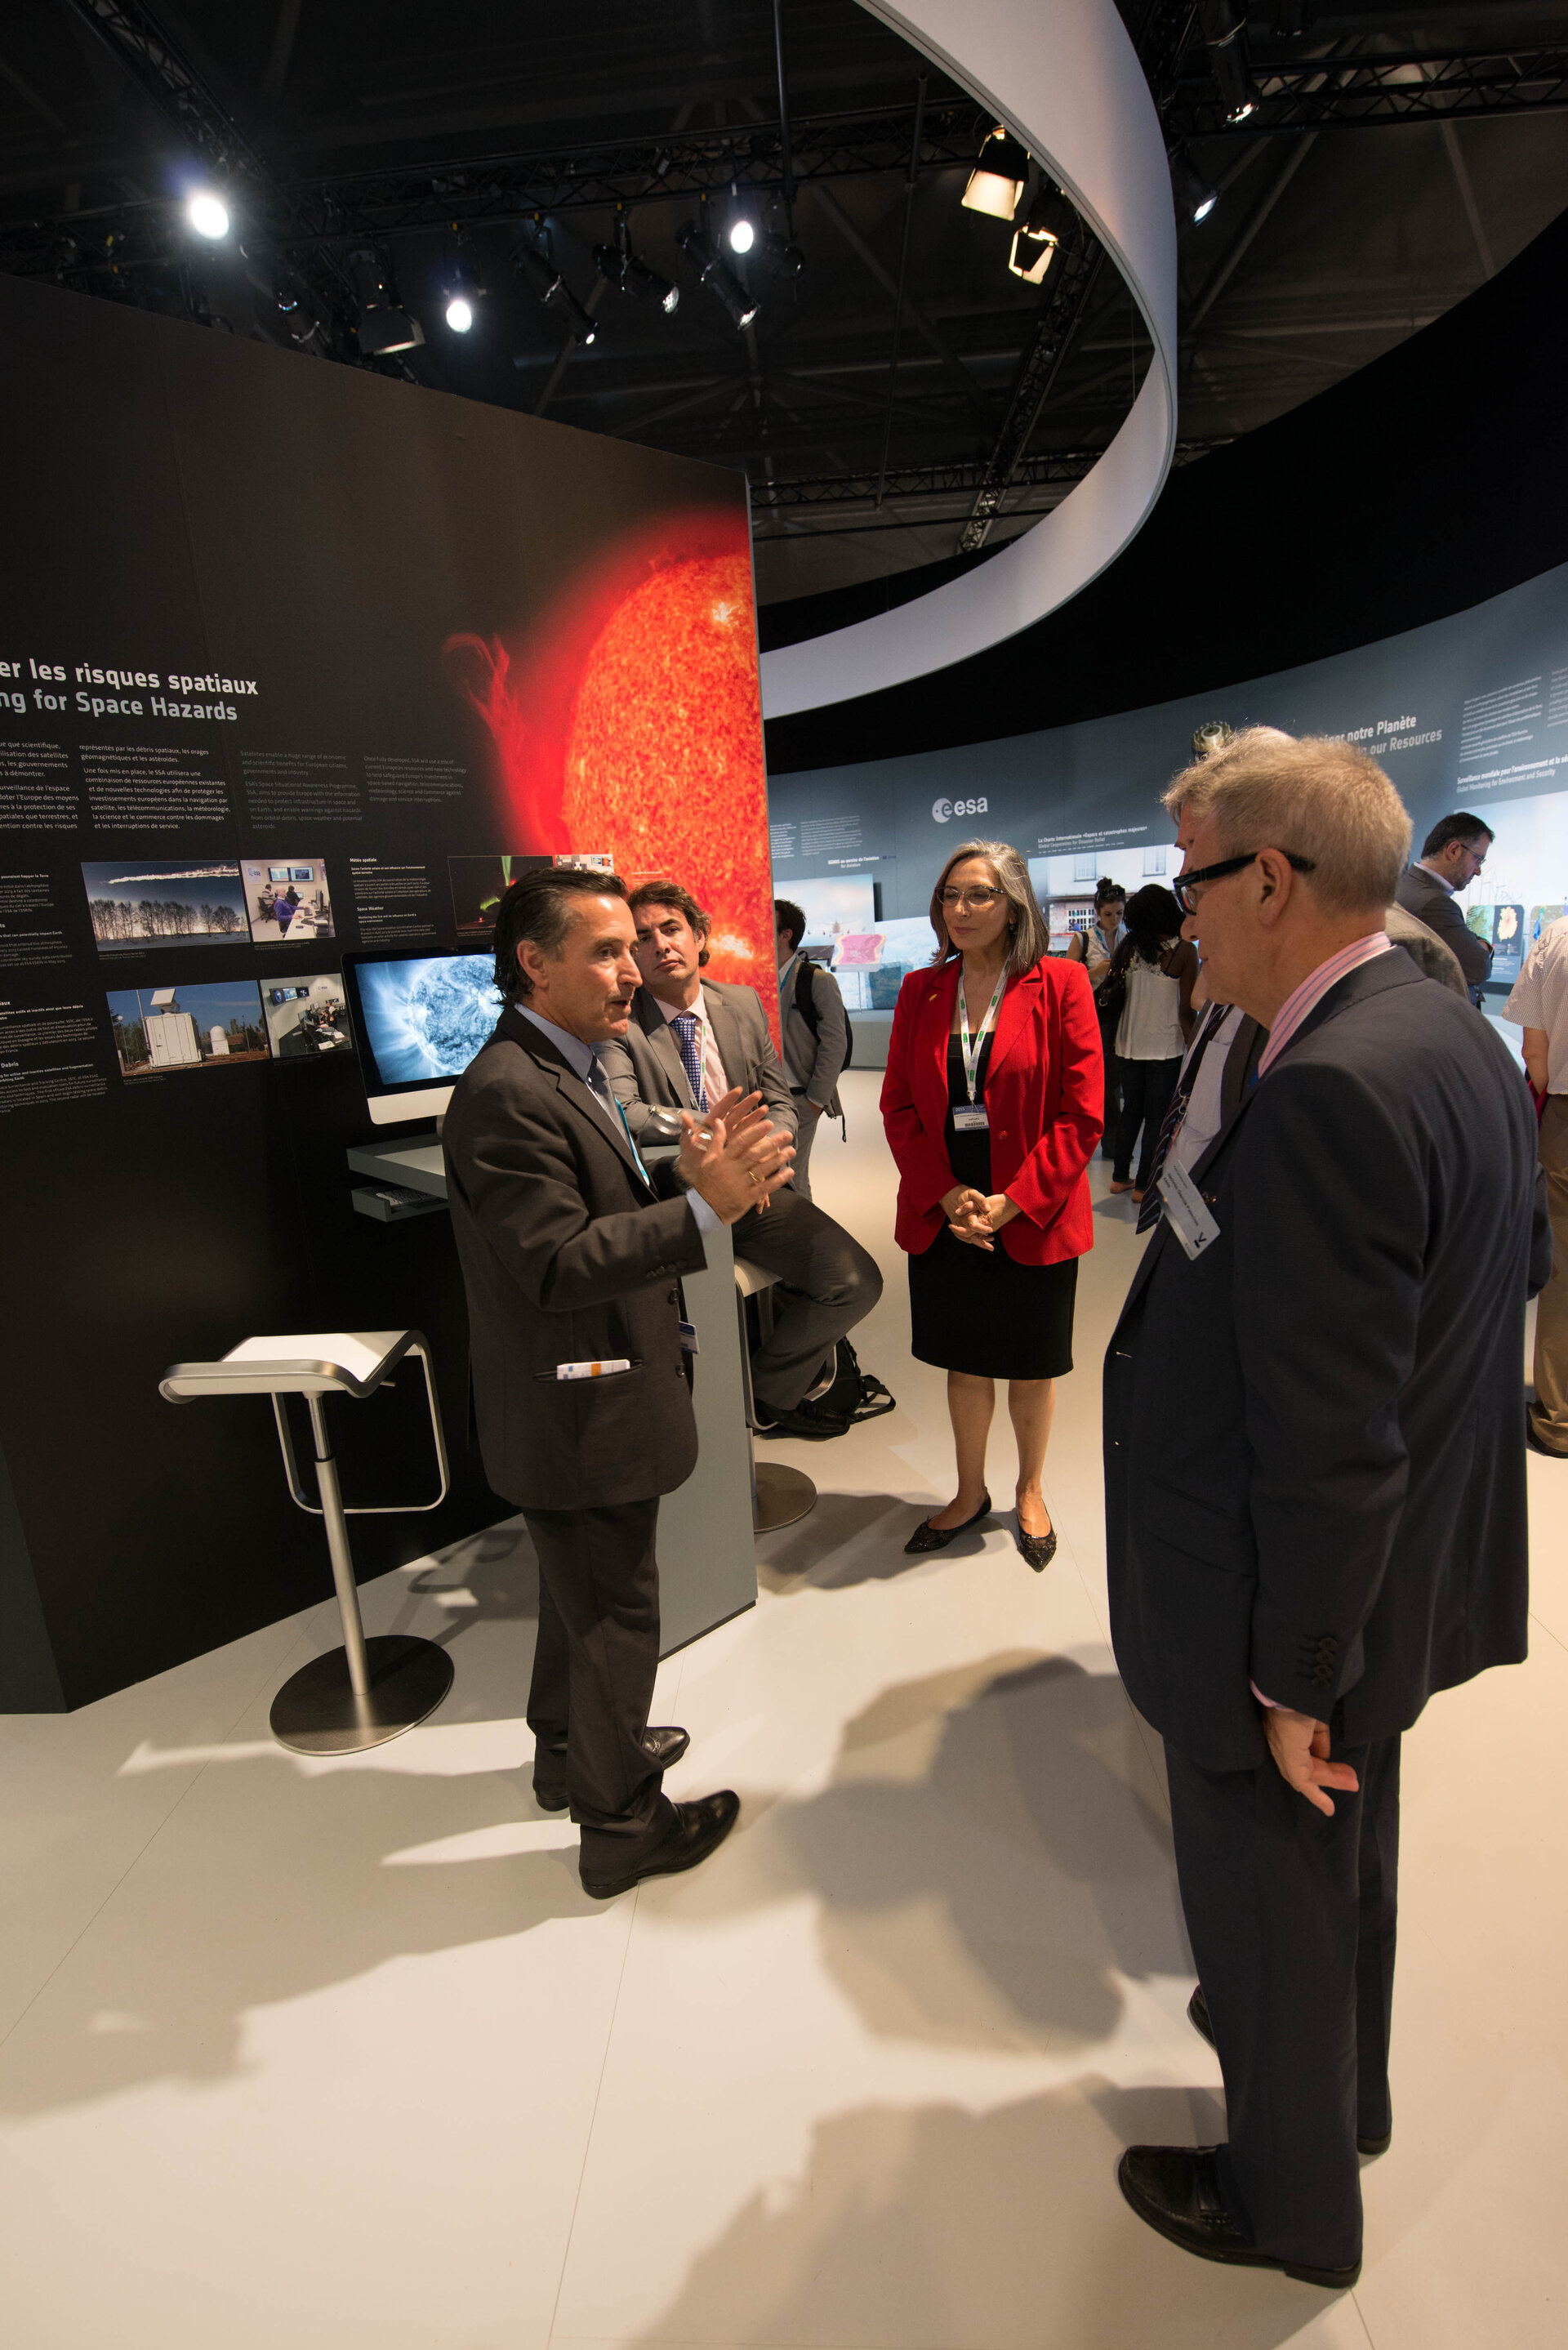 Fernando Doblas presents the ESA Pavilion